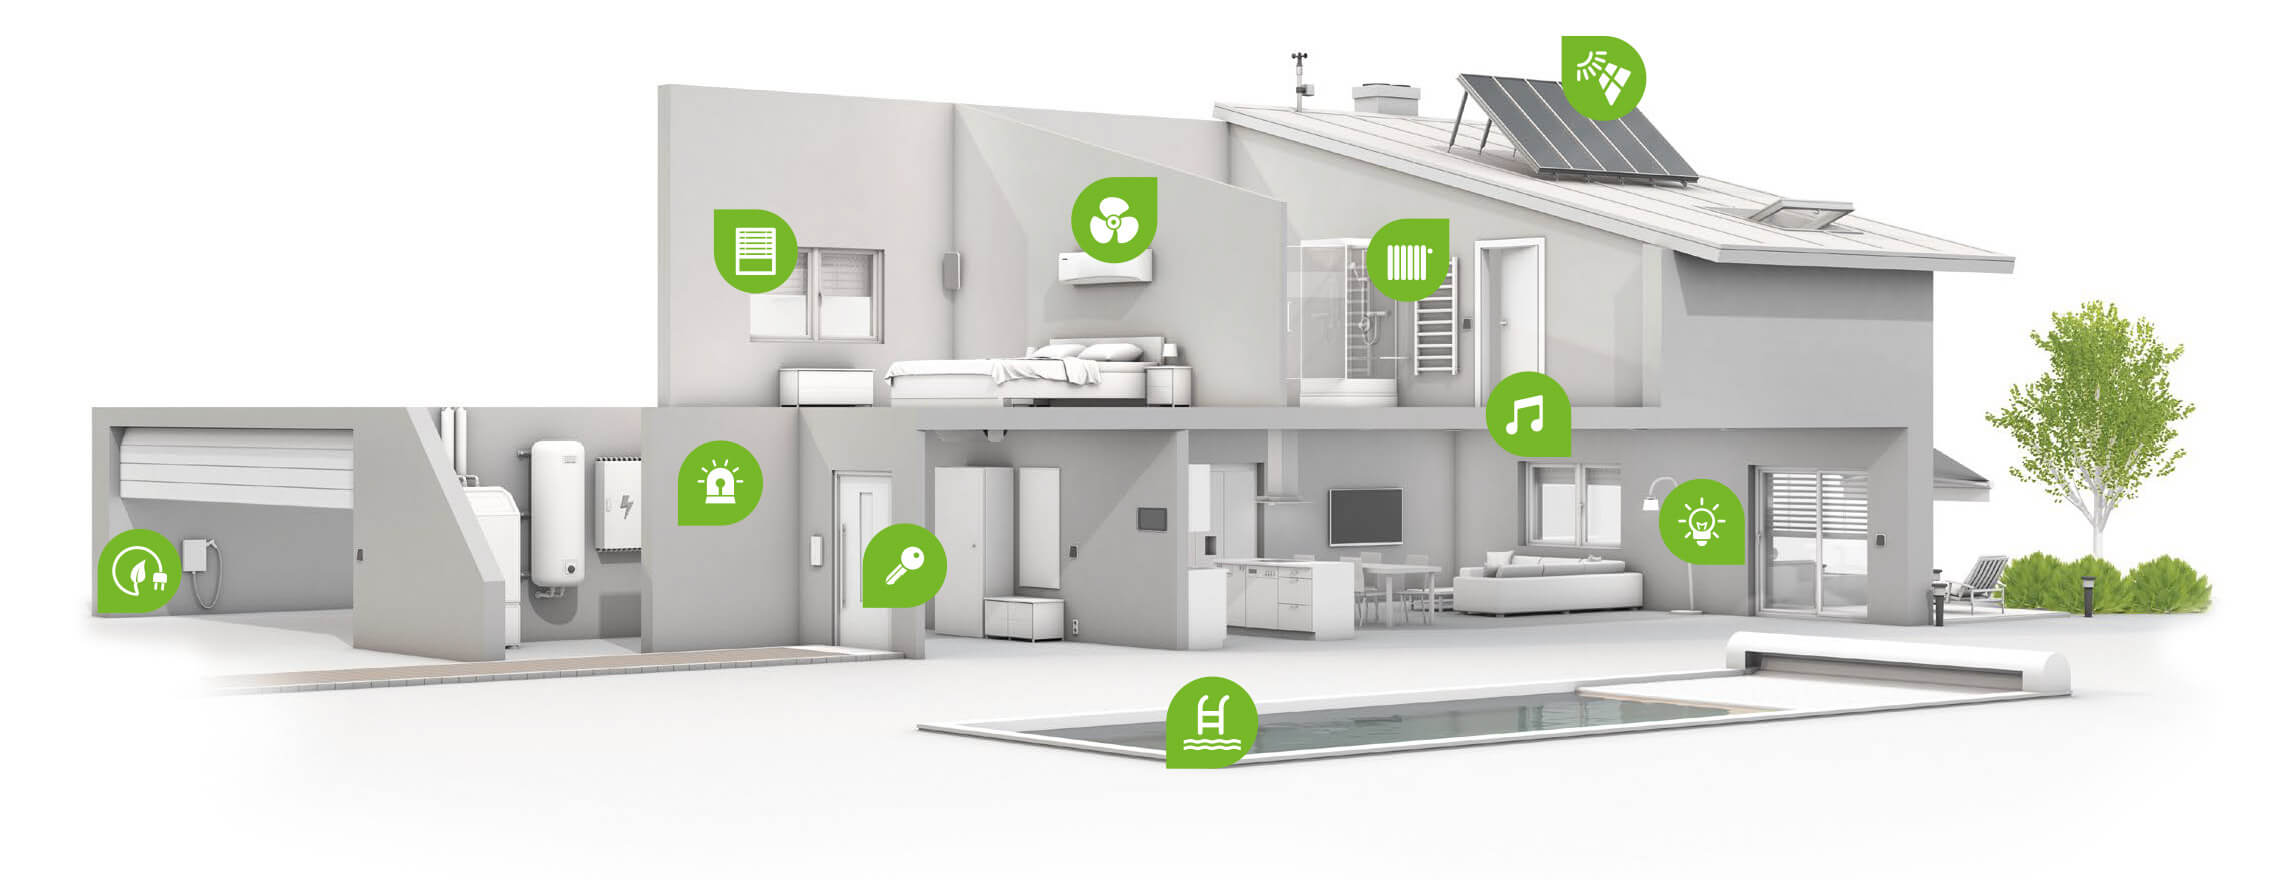 Smart home not only automatiseret your life, but also help to monitor the health of